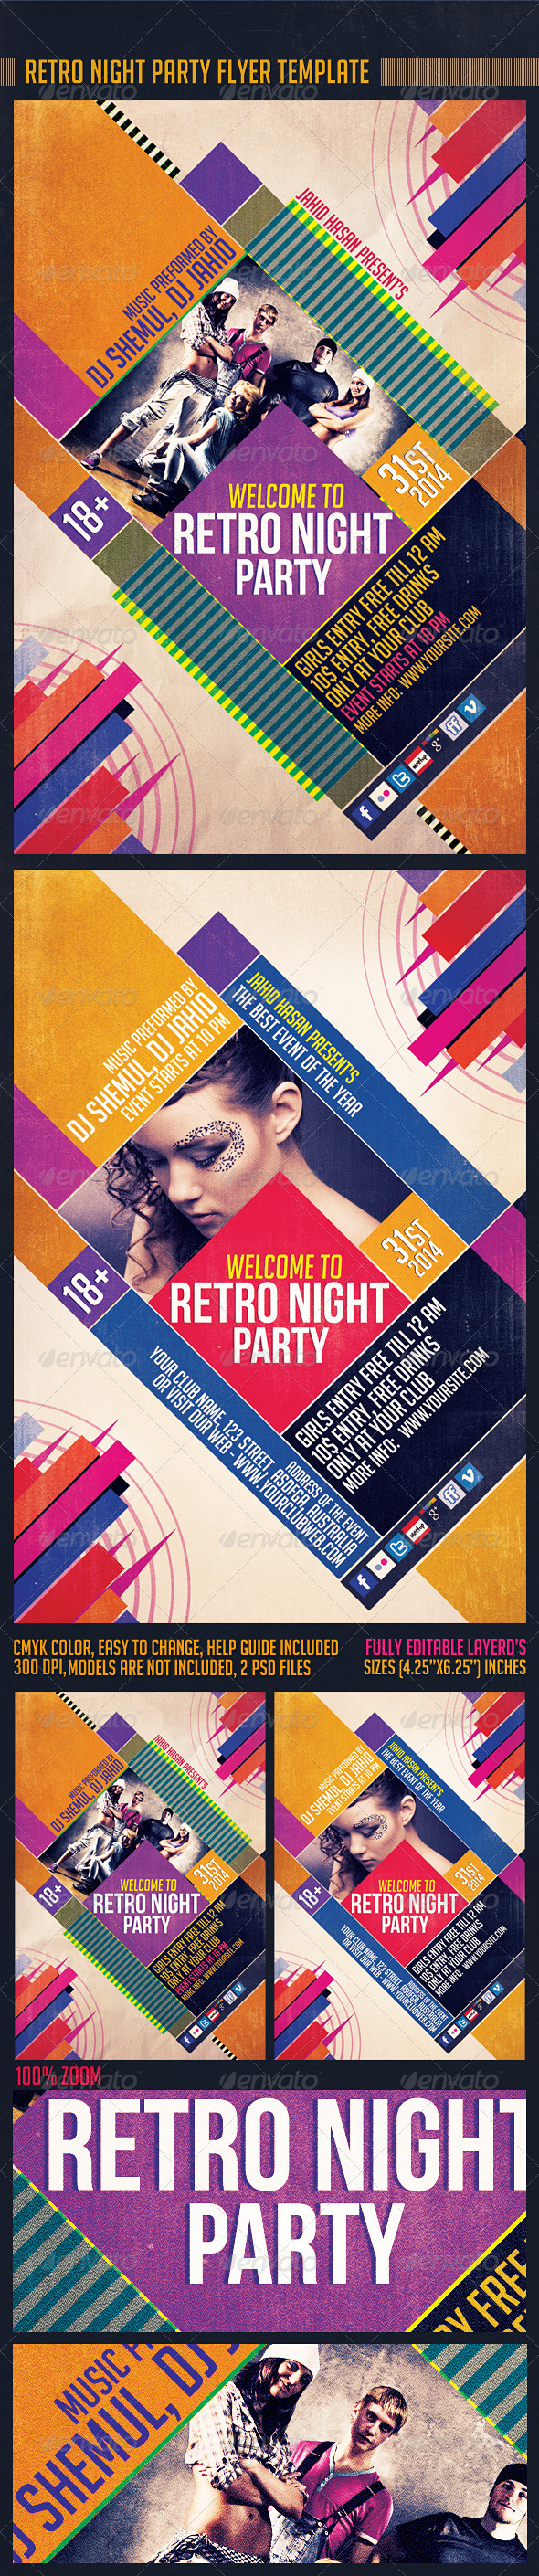 Retro Night party Flyer Template - Clubs & Parties Events